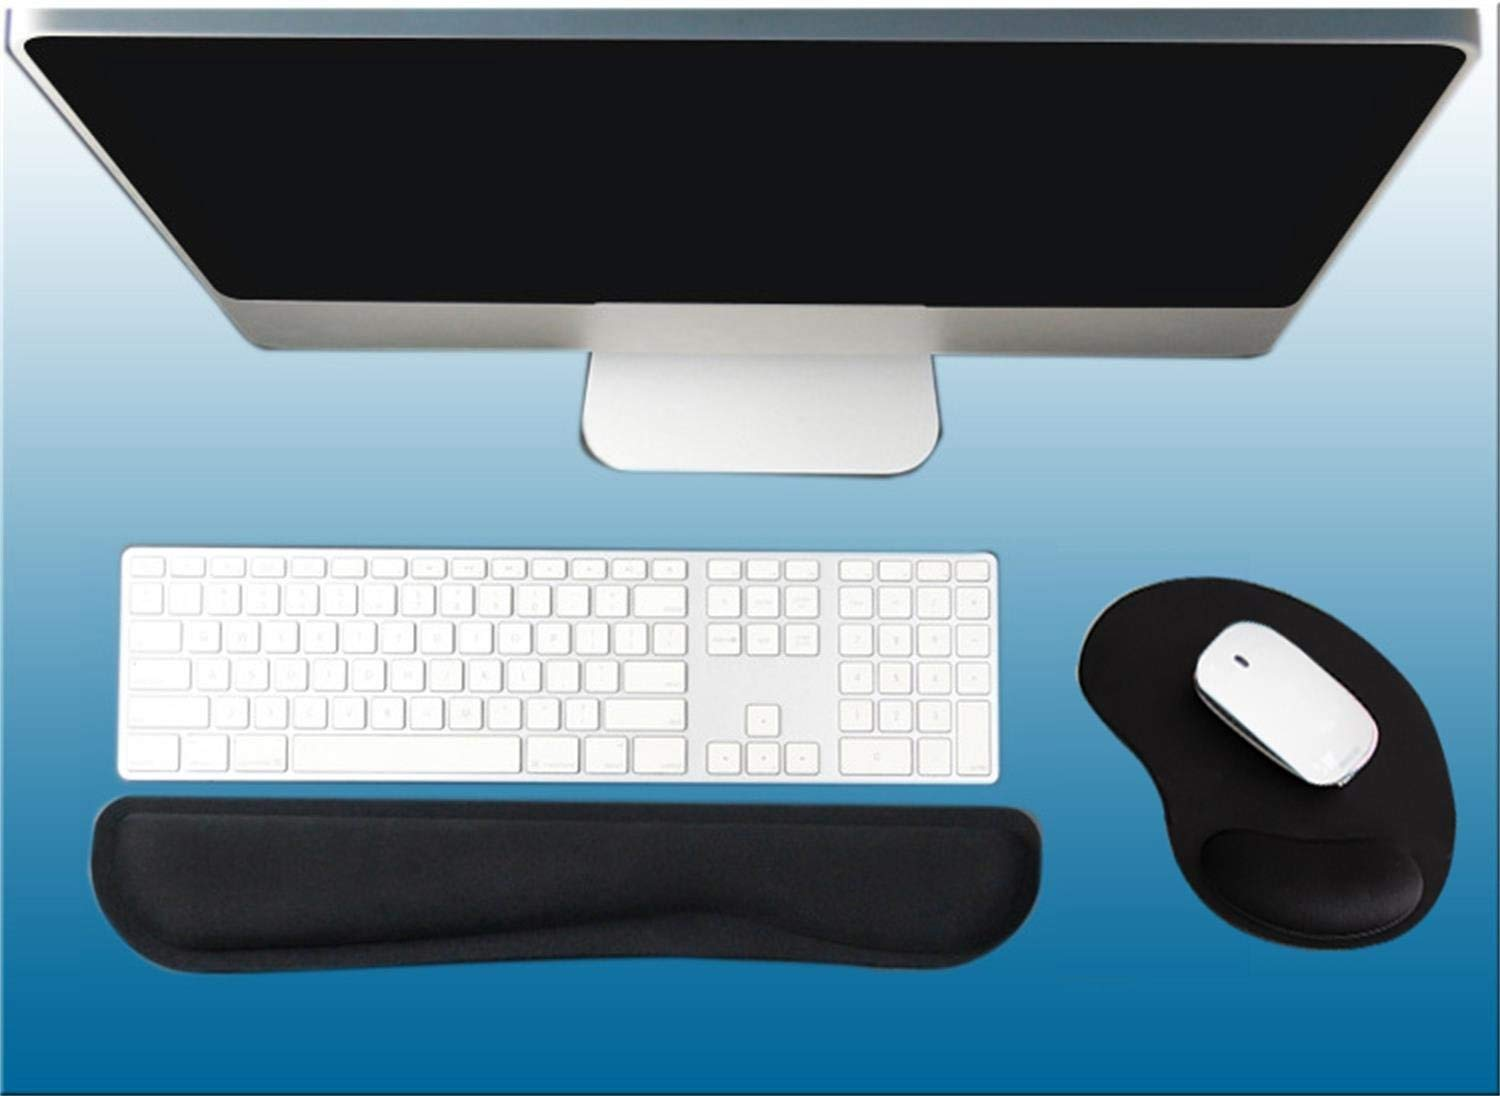 4423a5fc309 Gel Keyboard Wrist Rest Pad Kit-Keyboard Pad and Ergonomic Mouse Pad with  Wrist Support